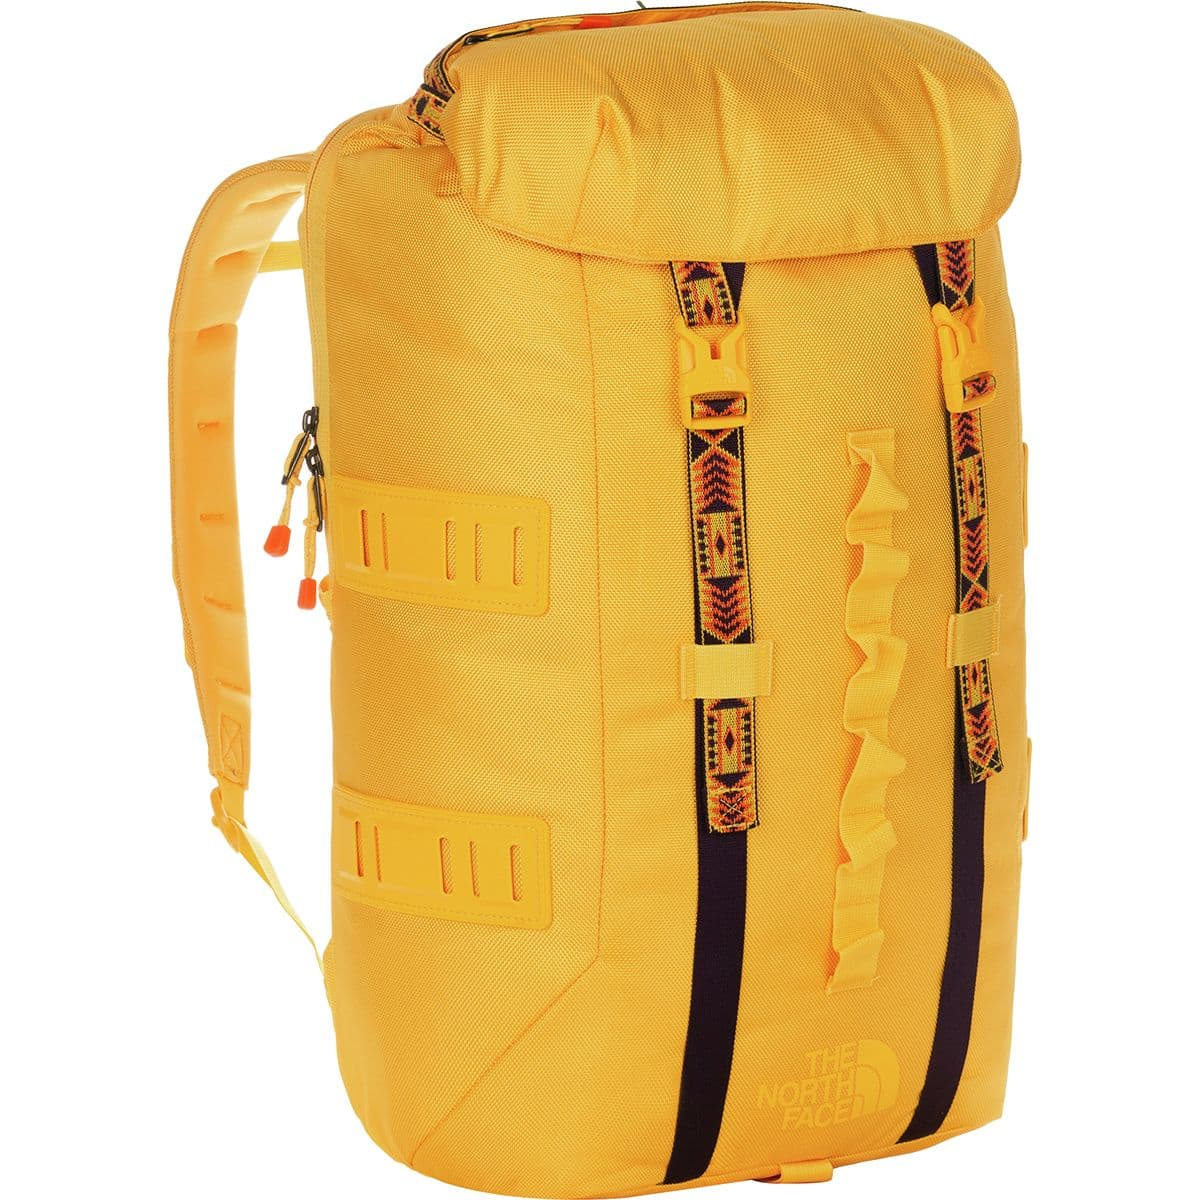 5c81fd540 The North Face Lineage Ruck 37L Backpack (yellow) $57 + Free ...